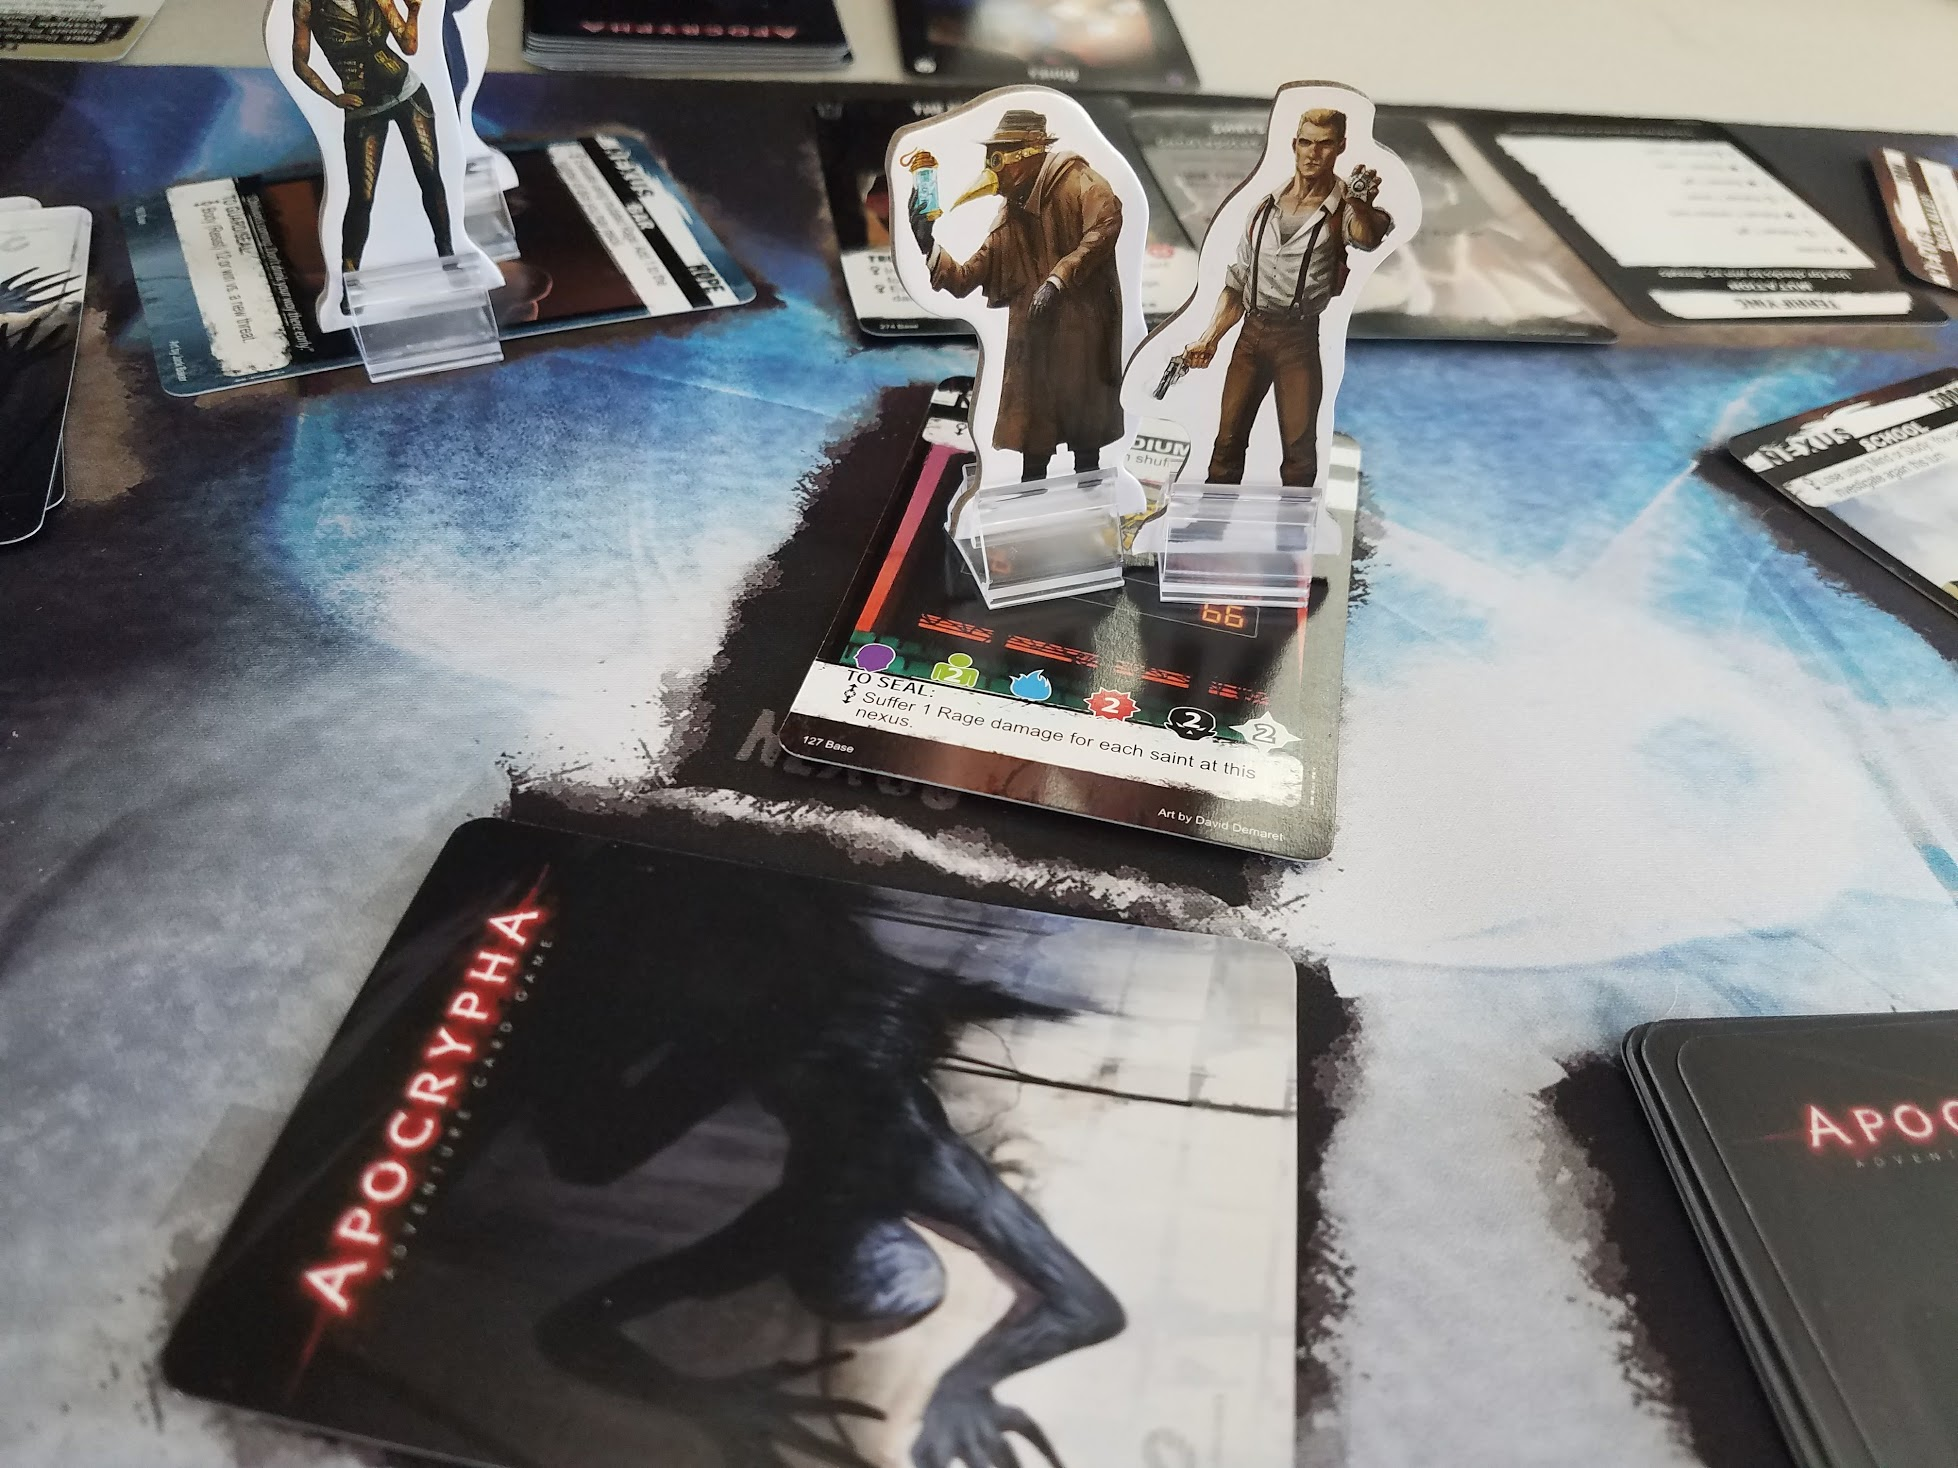 Apocrypha is a card game and tabletop RPG in one box (correction)